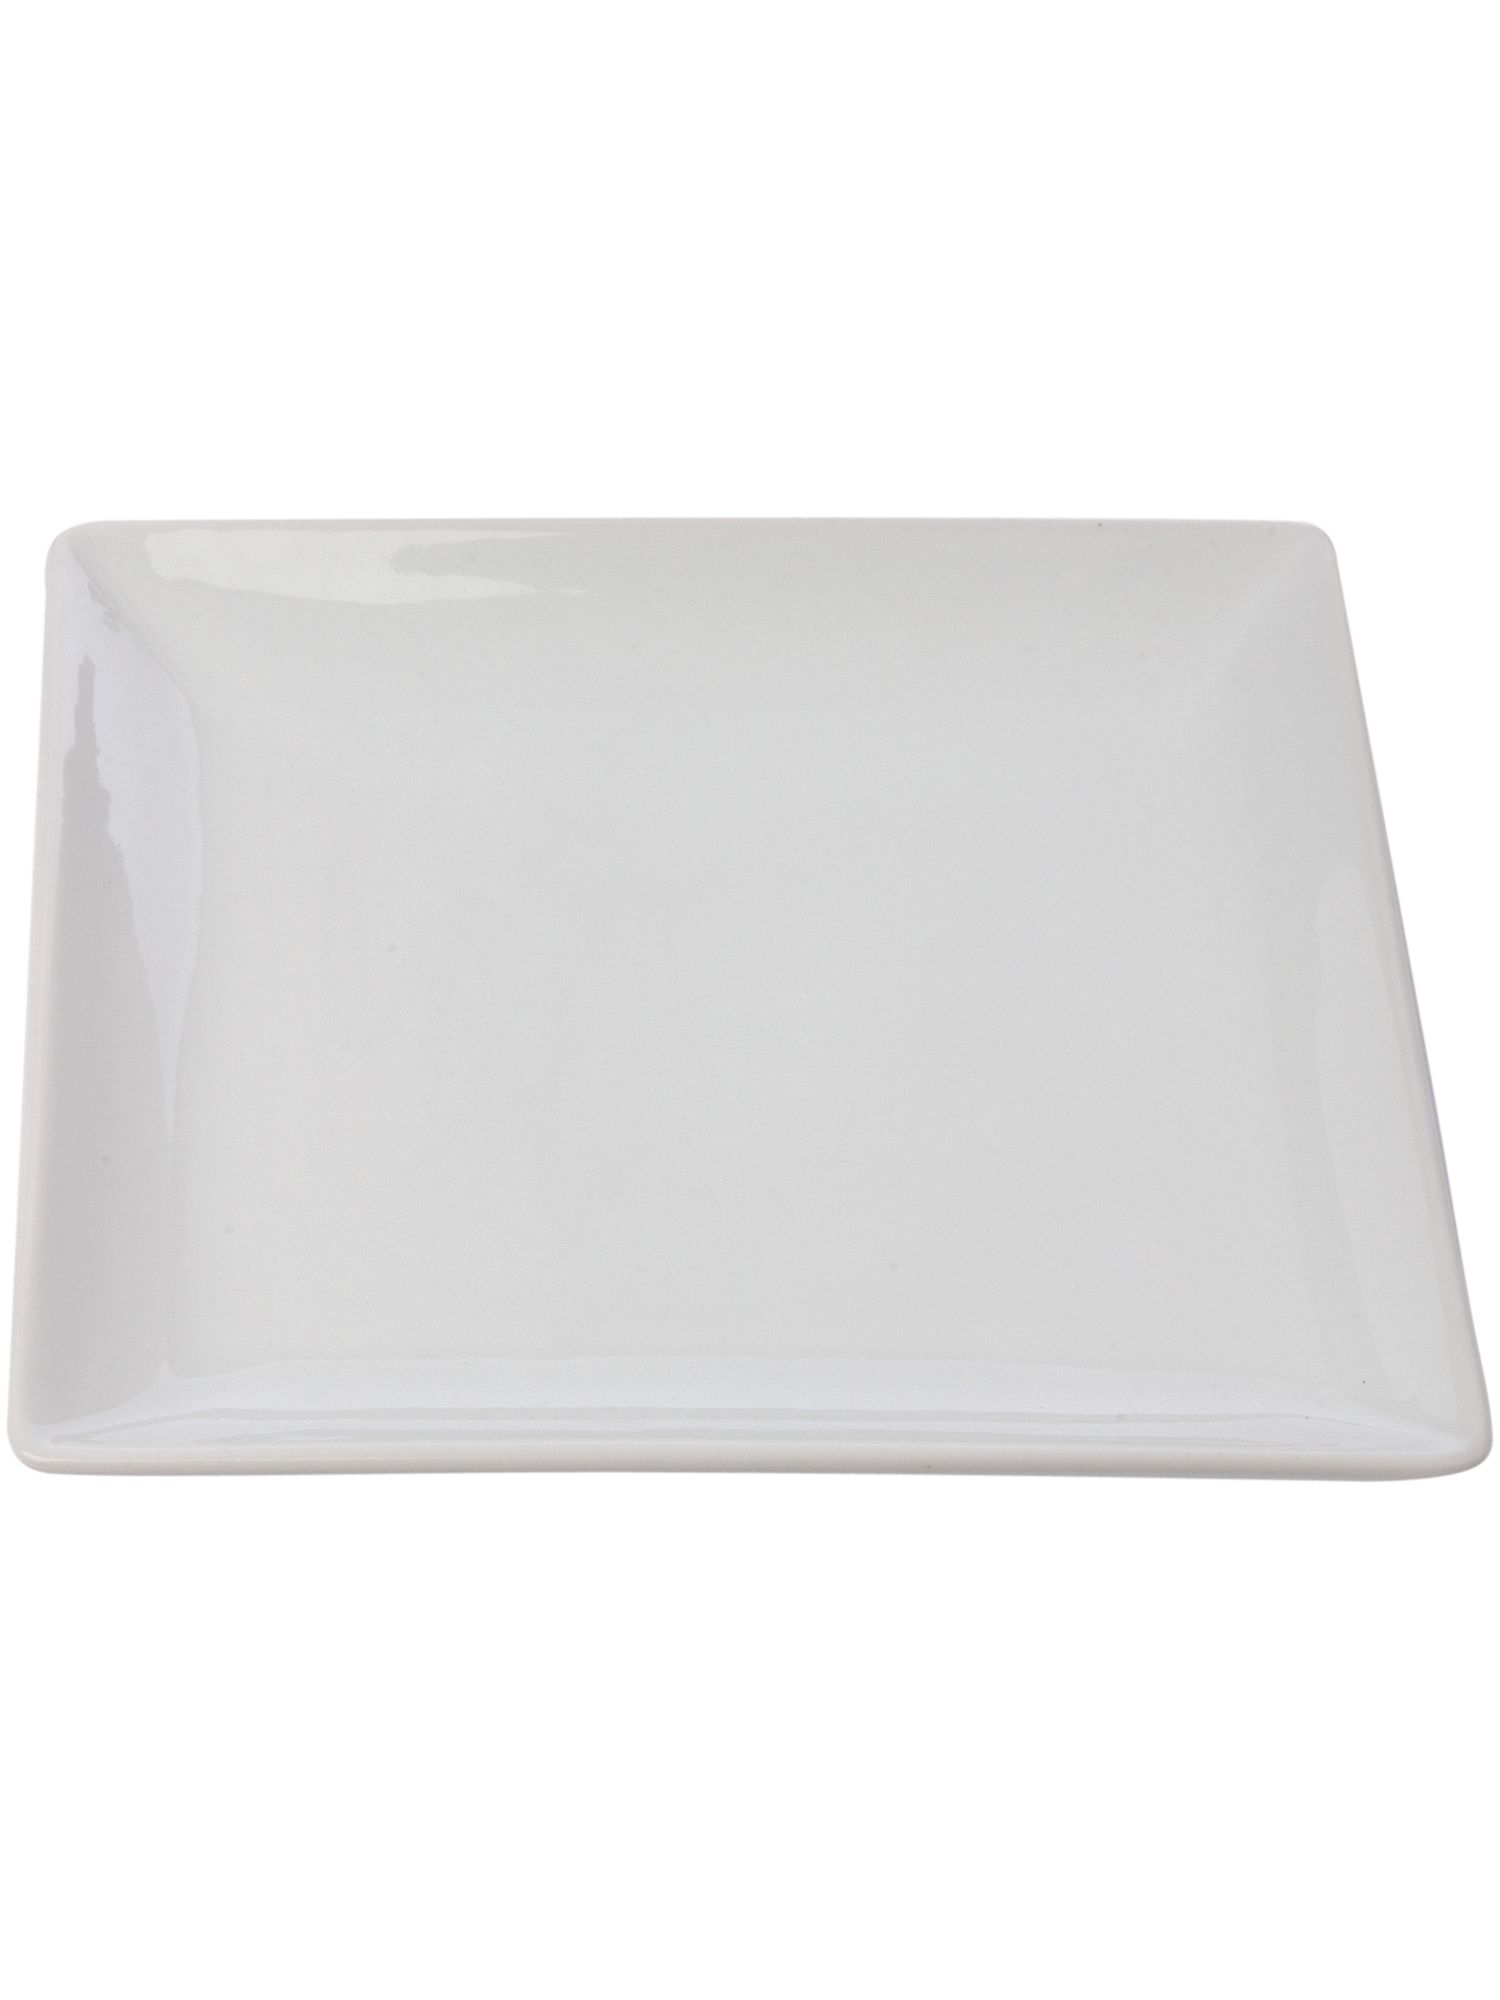 Beau square side plate